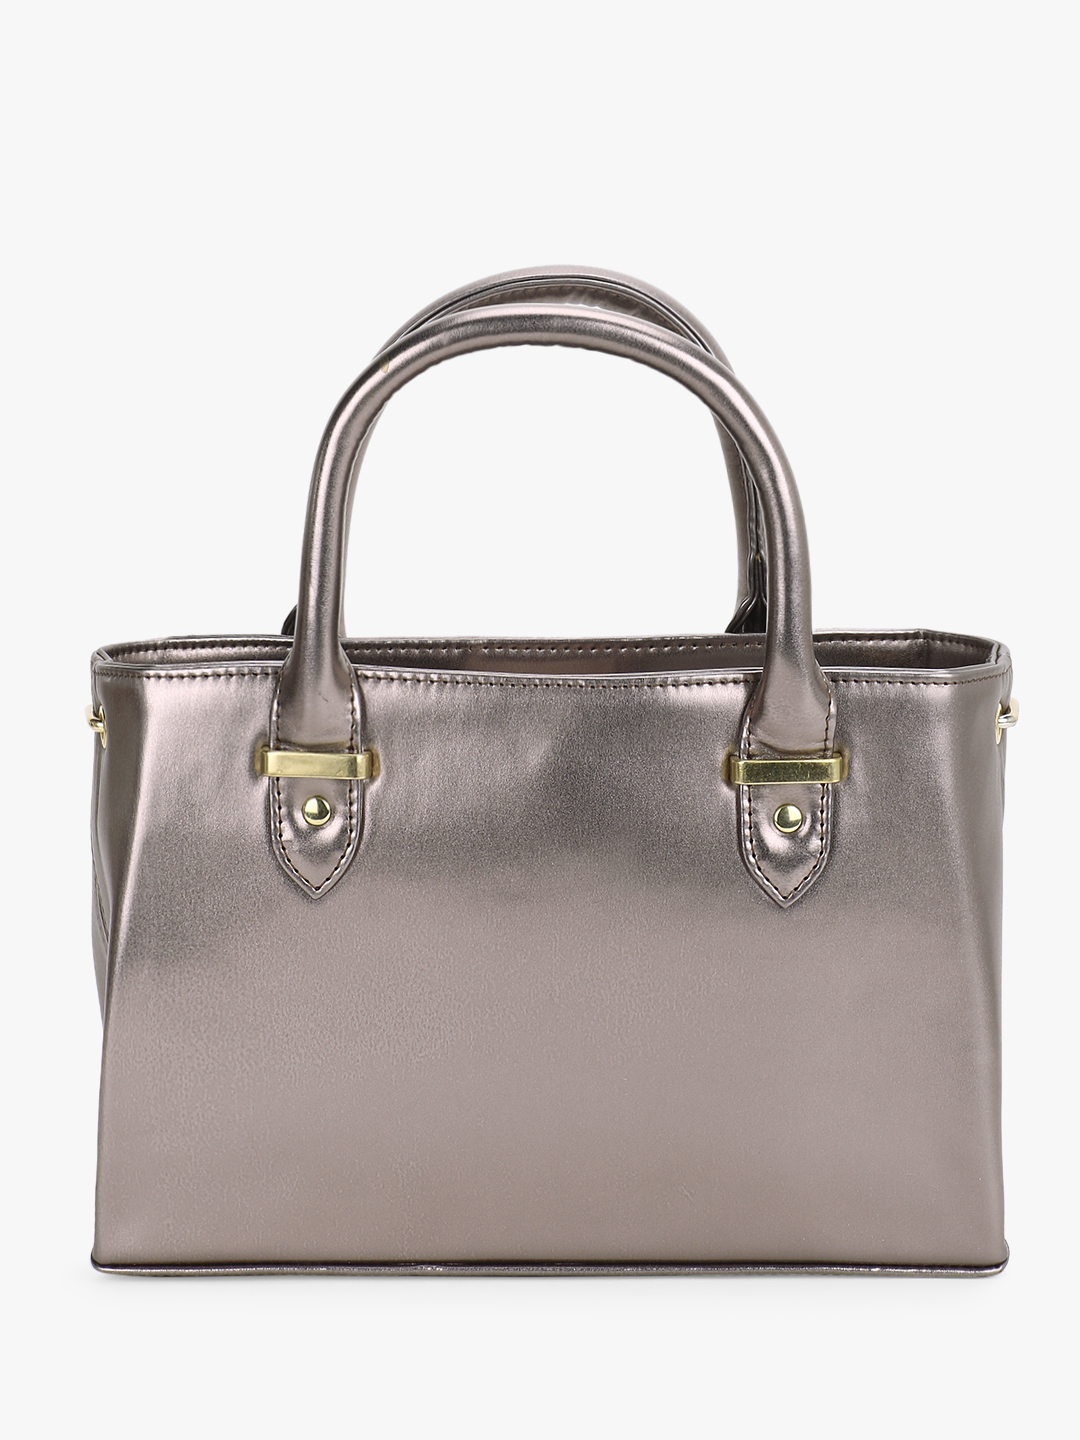 Gusto Grey Metallic Handbag 1